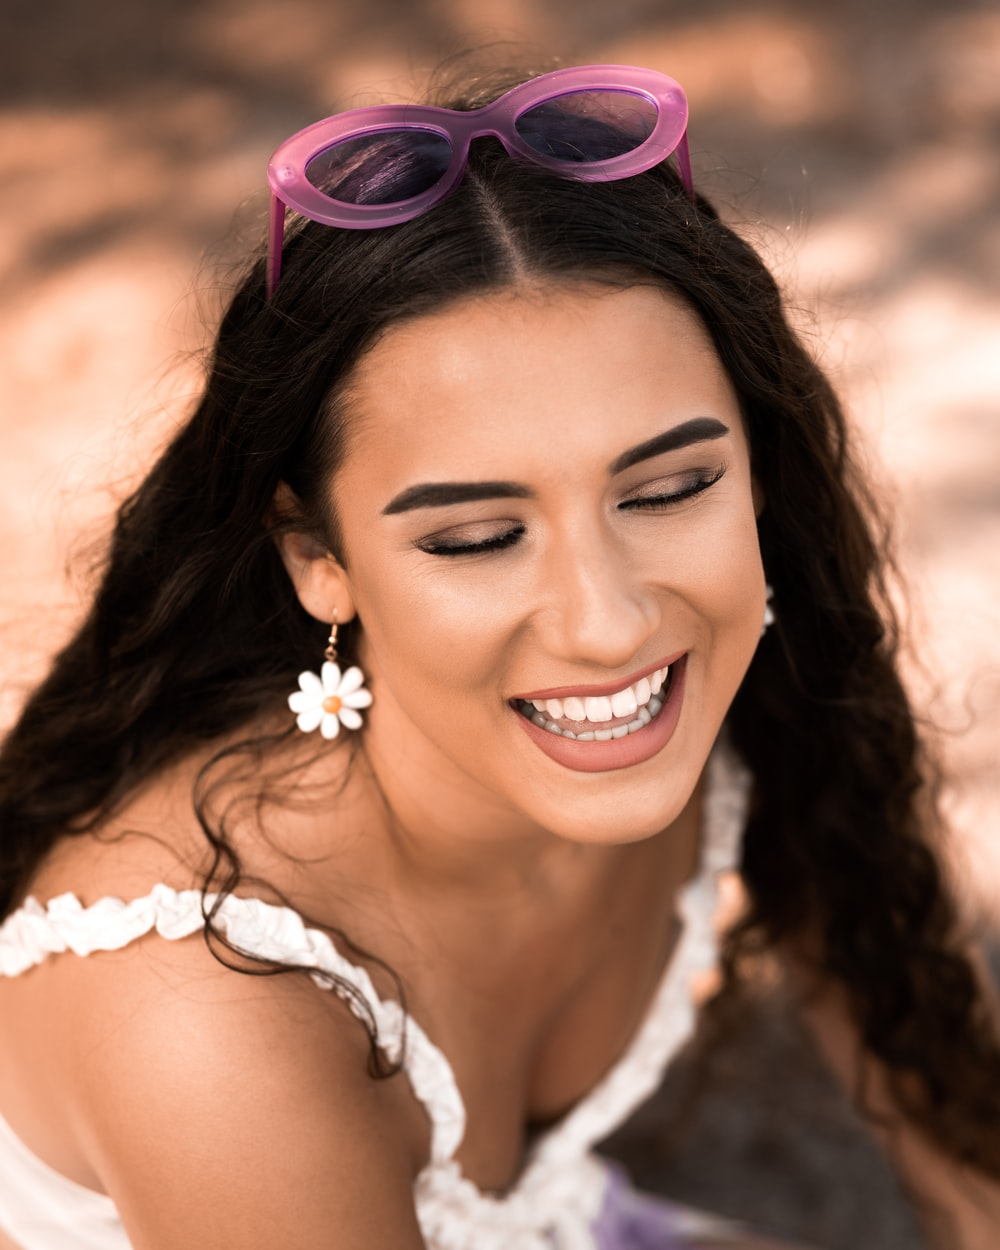 smiling woman wearing white floral headband and white floral sleeveless top